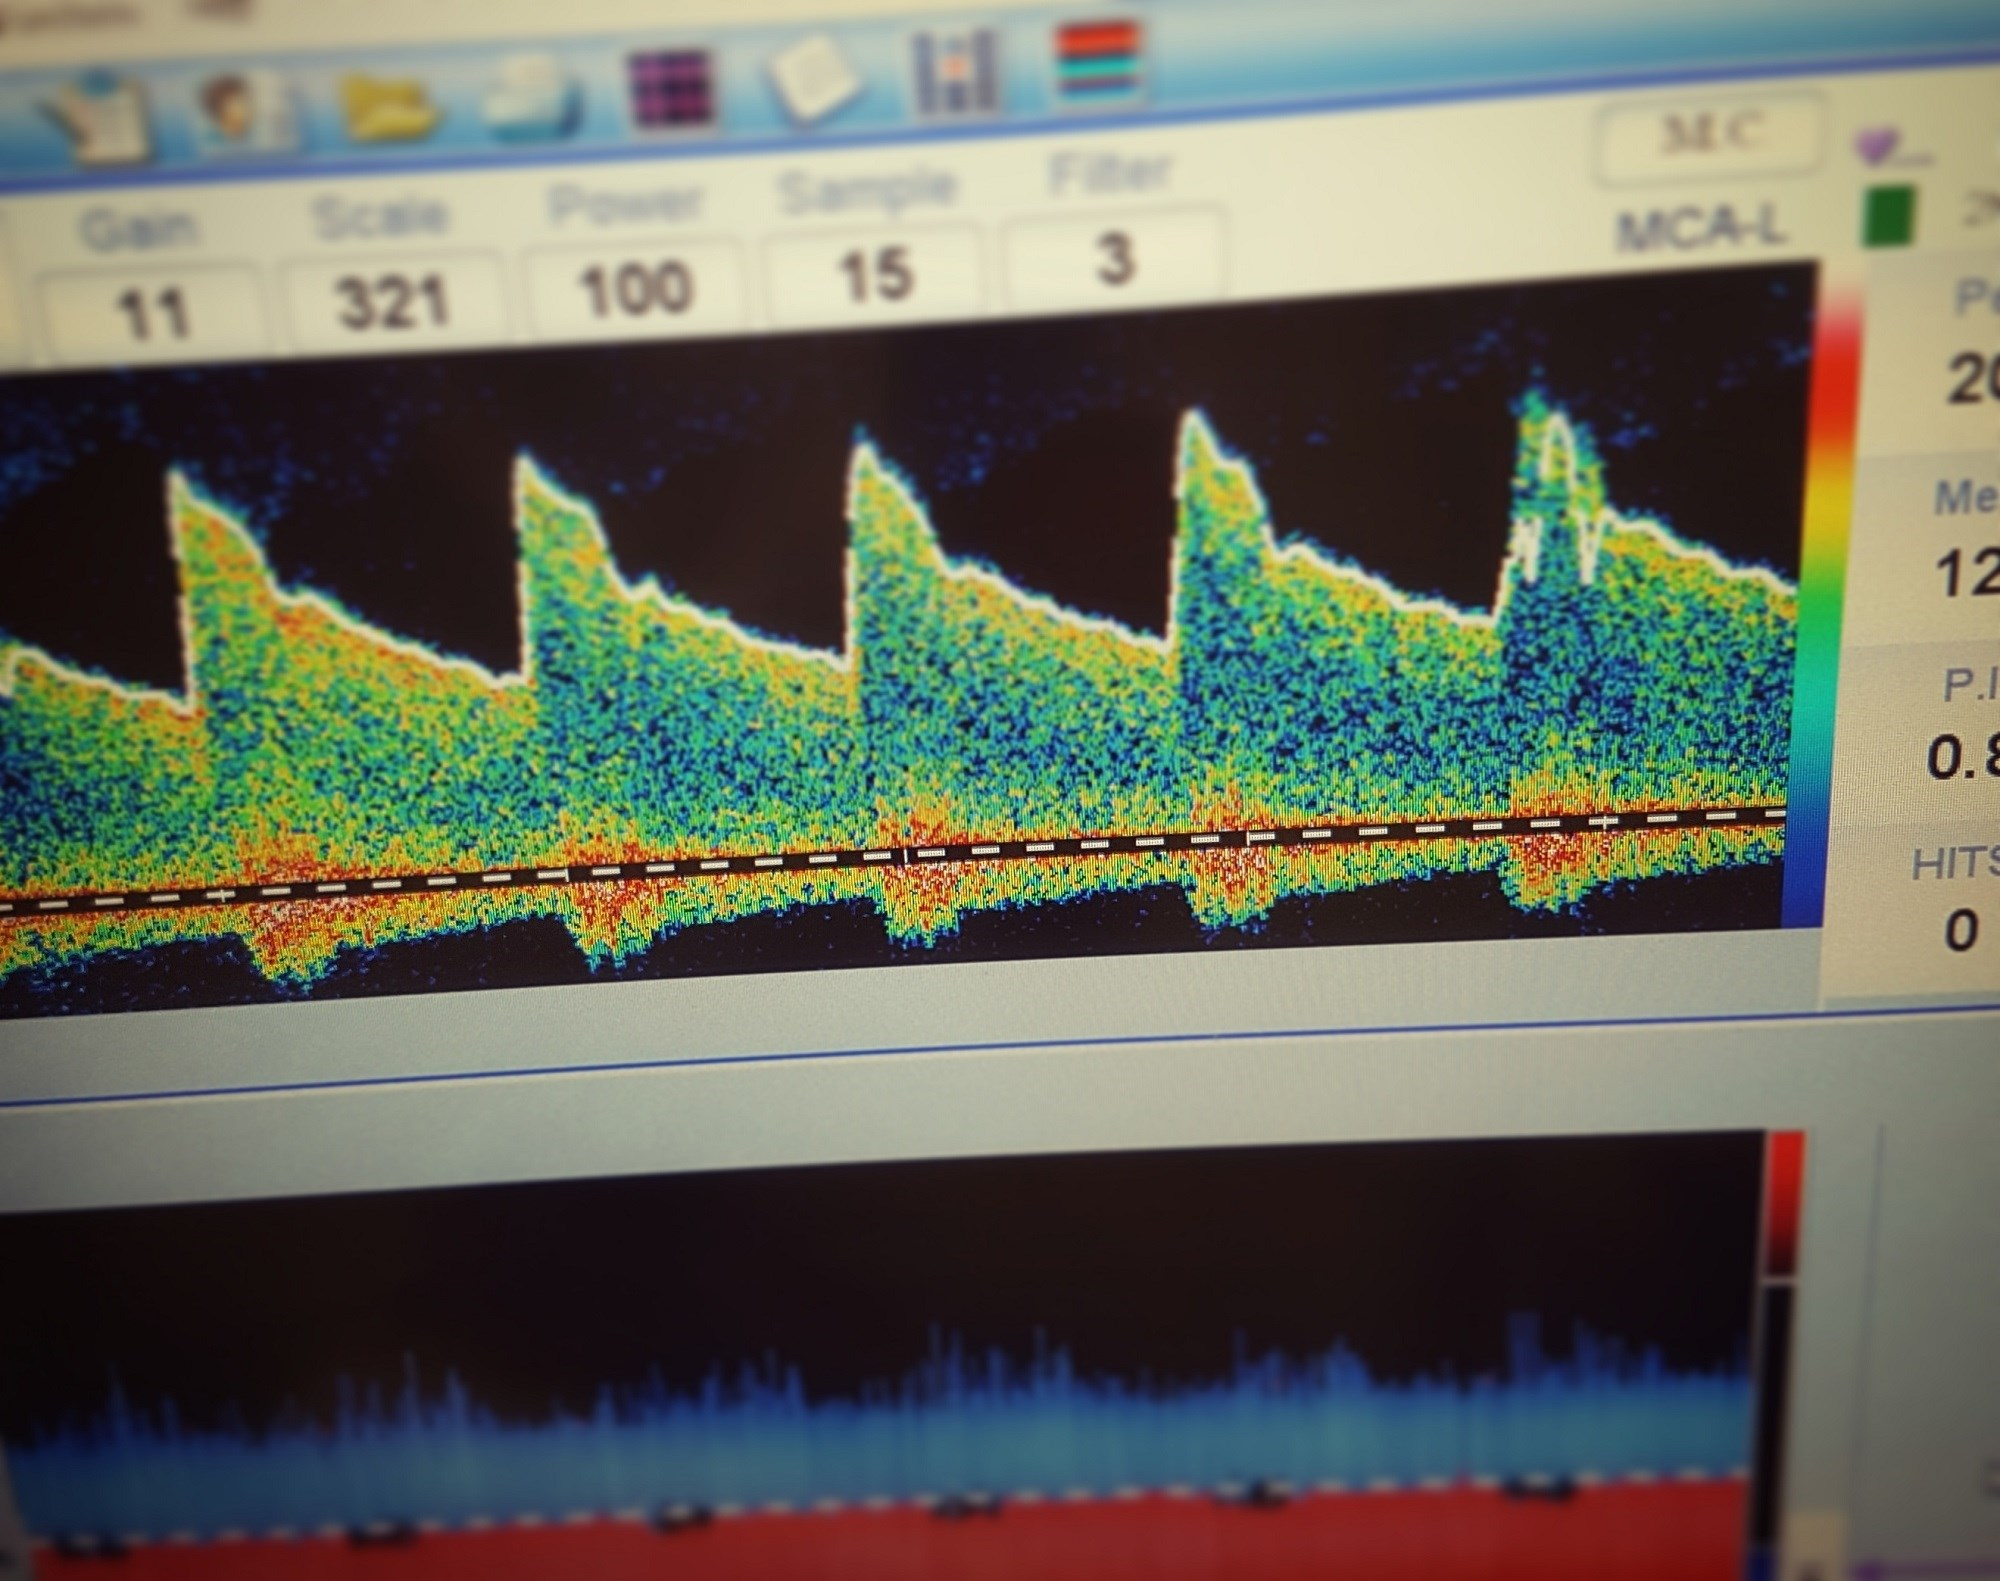 Transcranial Doppler ultrasound is effective in detecting acute intracranial artery occlusions.